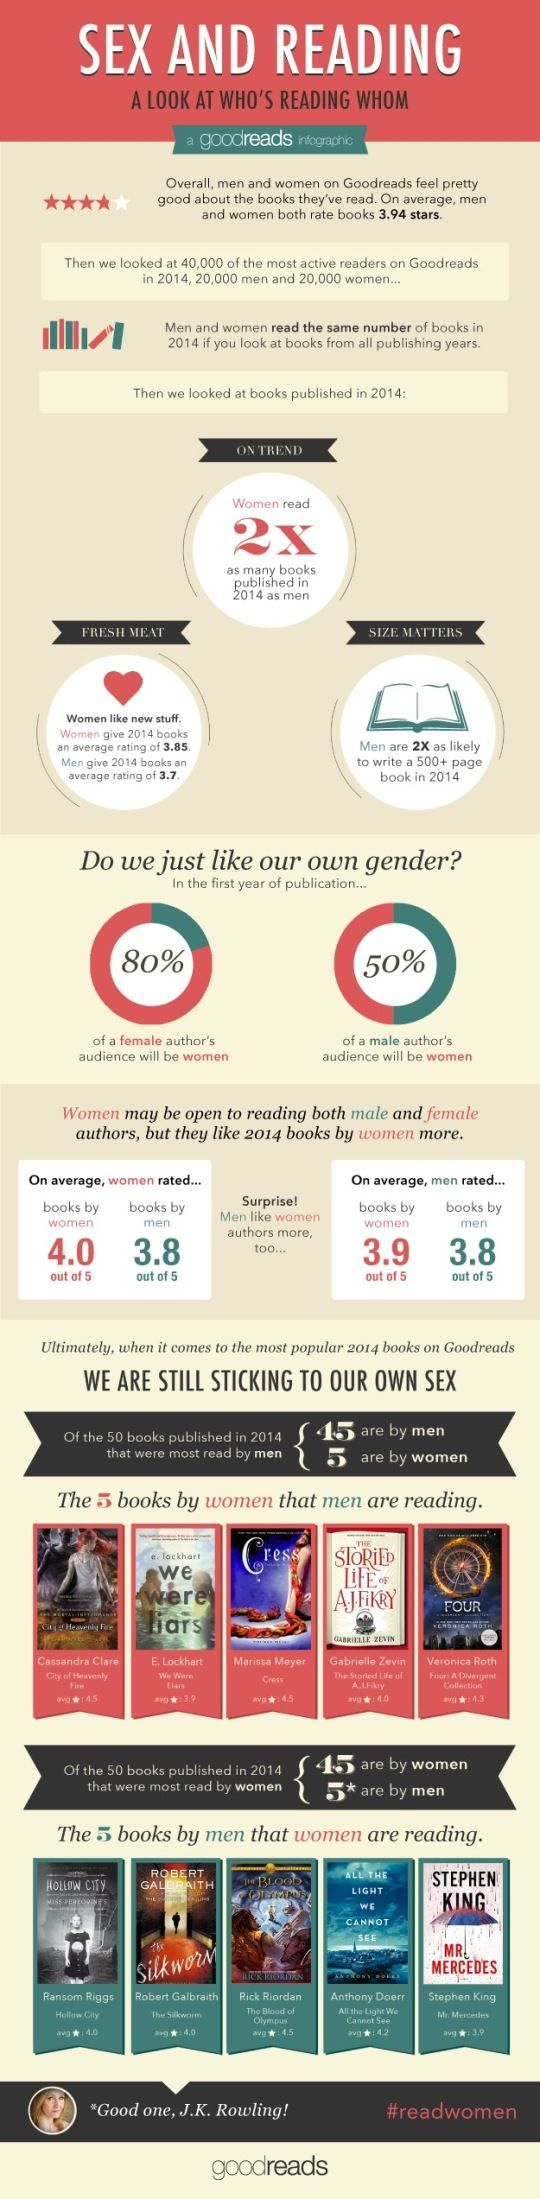 Take a look at reading preferences of women vs. men #infographic